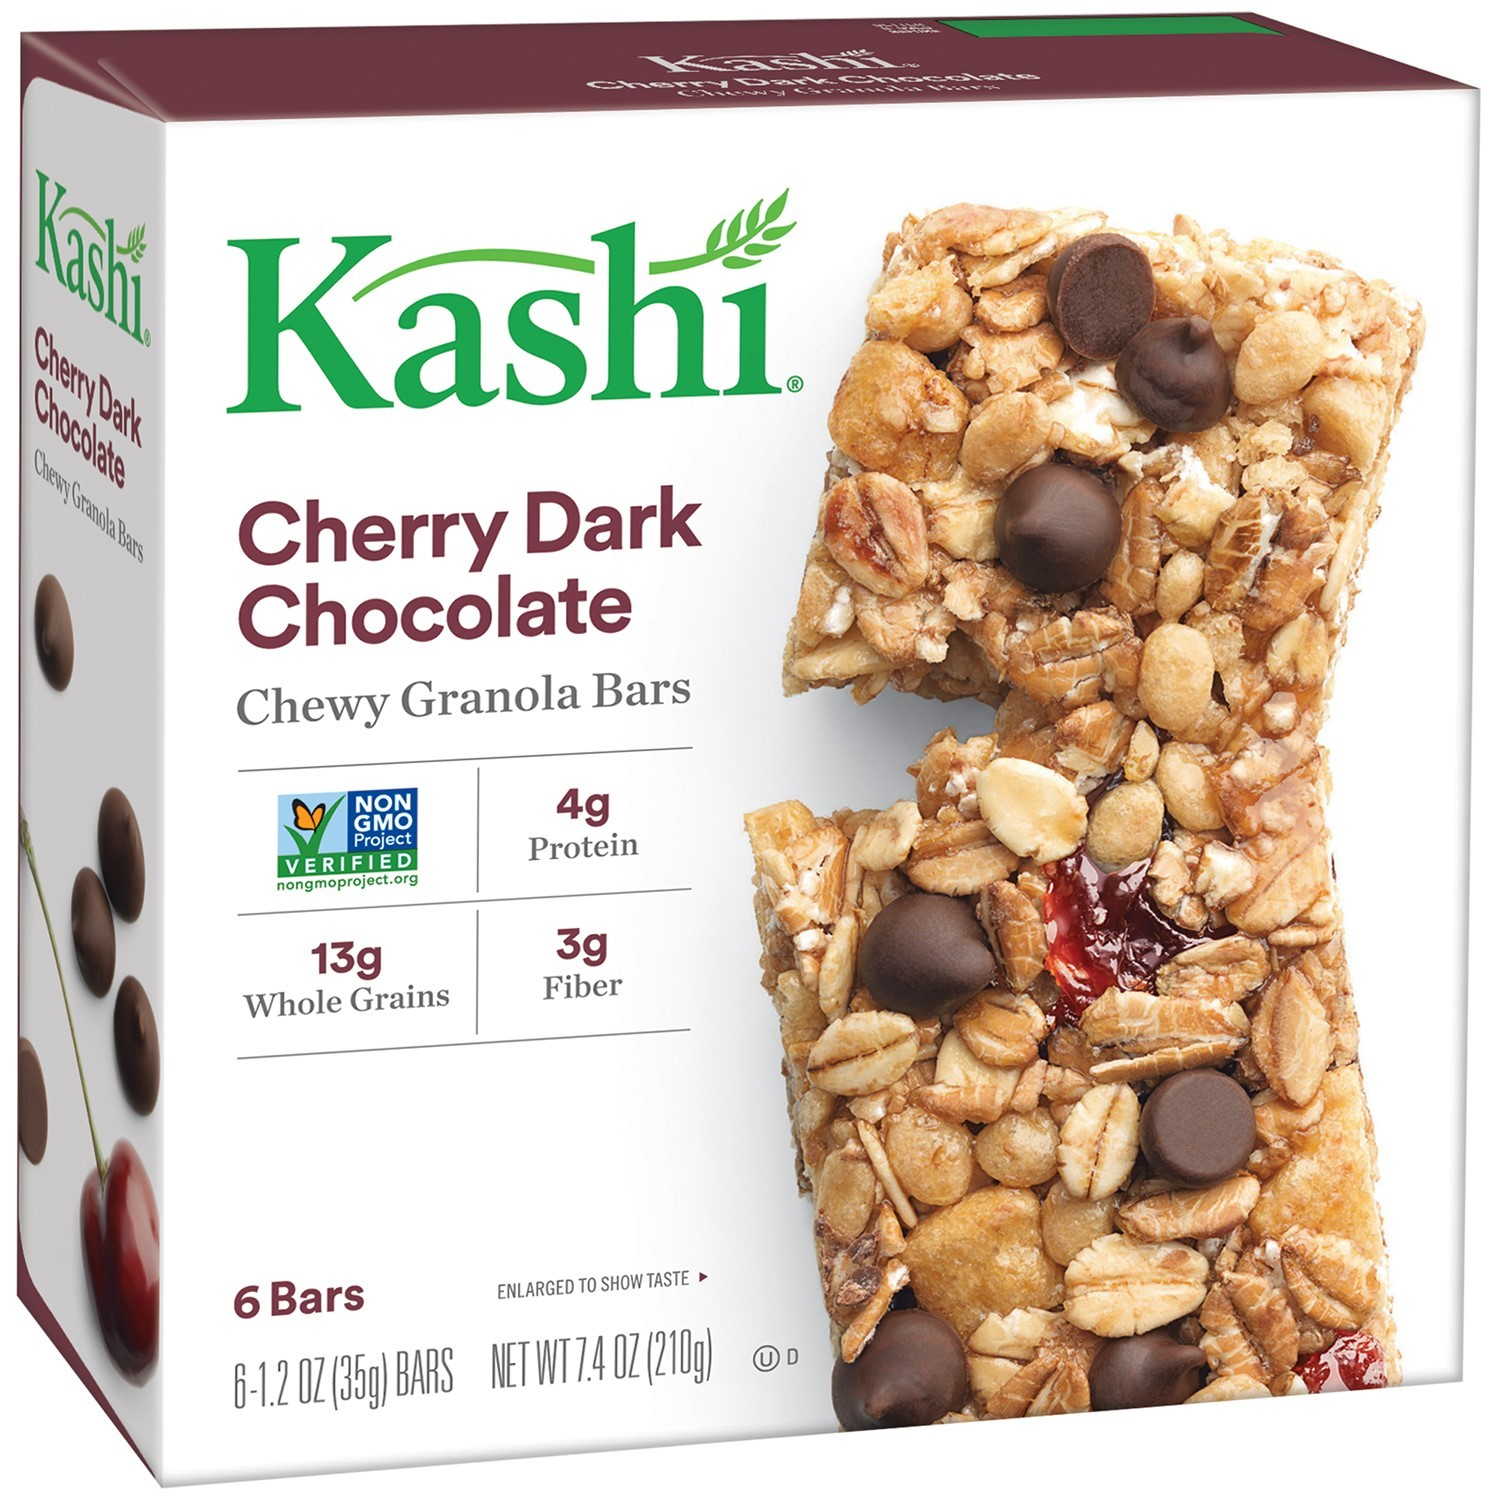 Kashi Cherry Dark Chocolate Chewy Granola Bars, 1.2 oz, 6 count